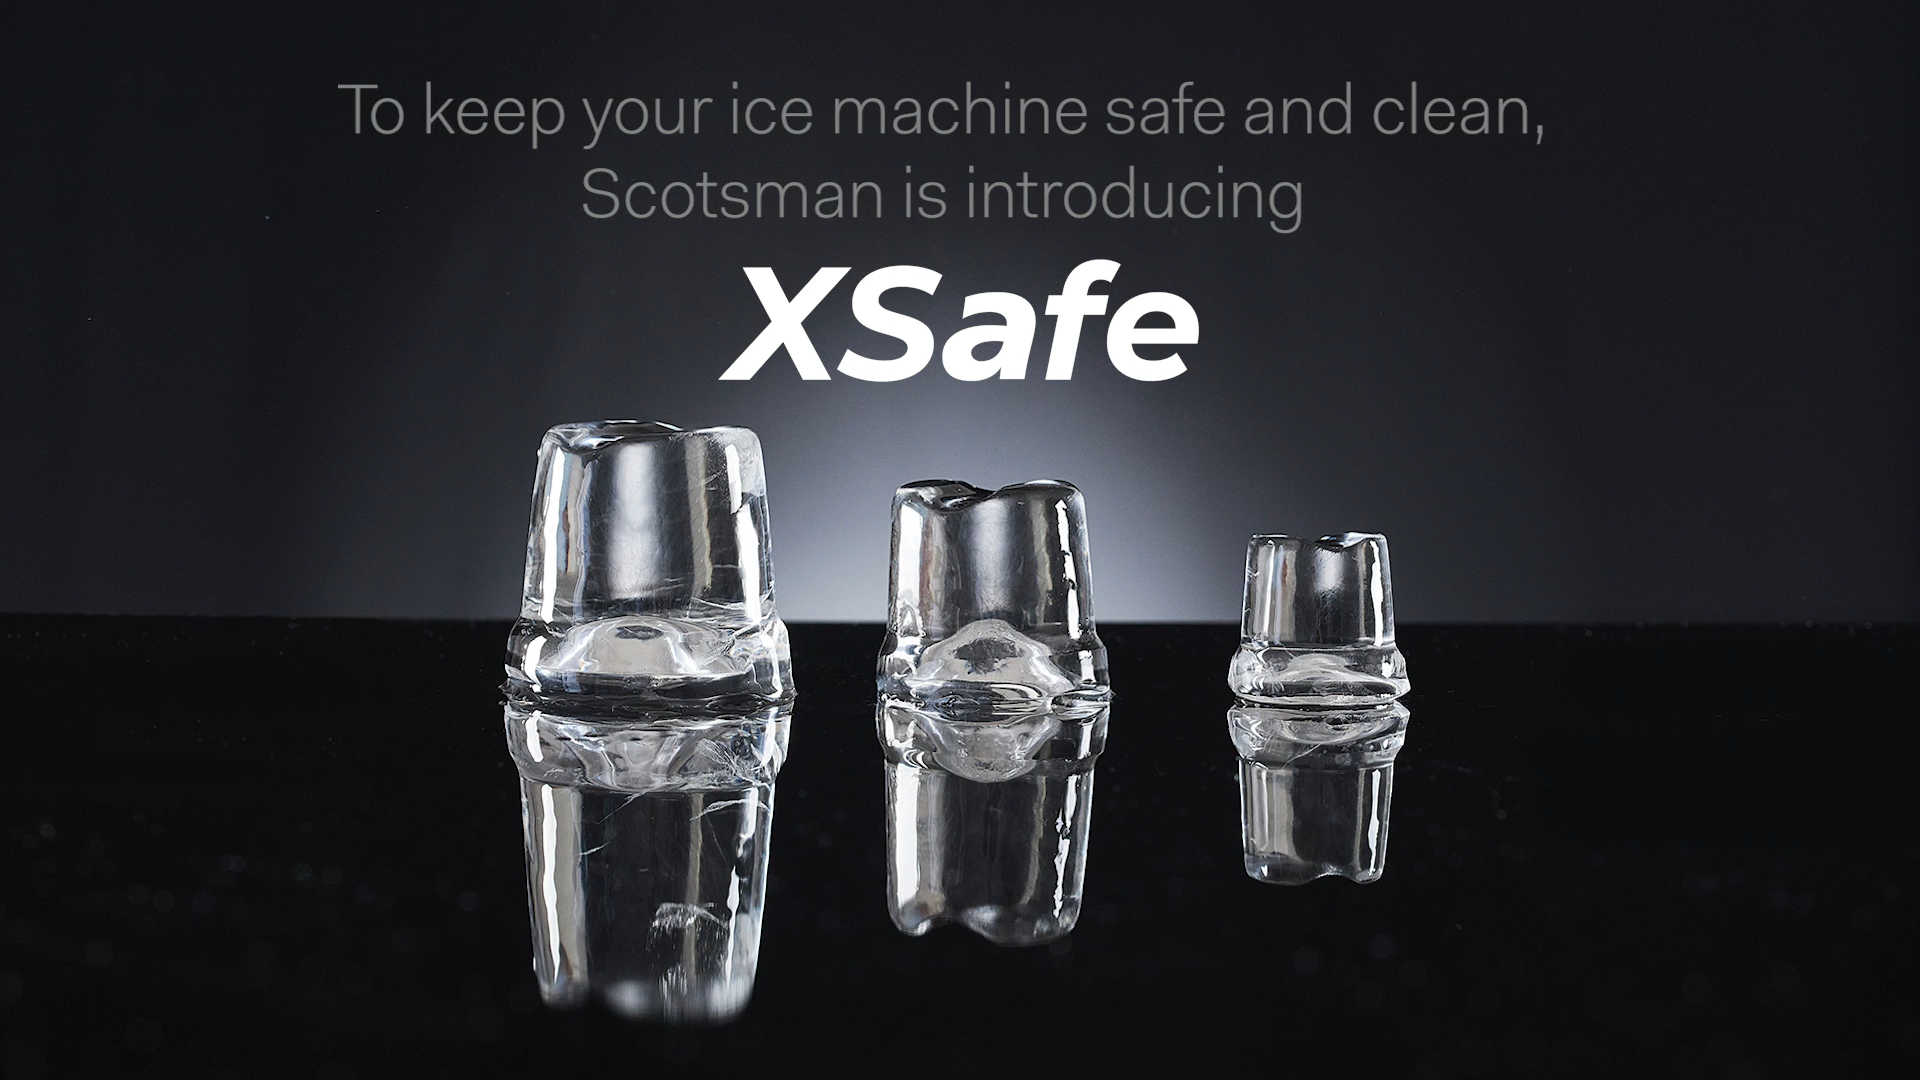 Introducing Scotsman XSafe - The new normal for ice machine hygiene!